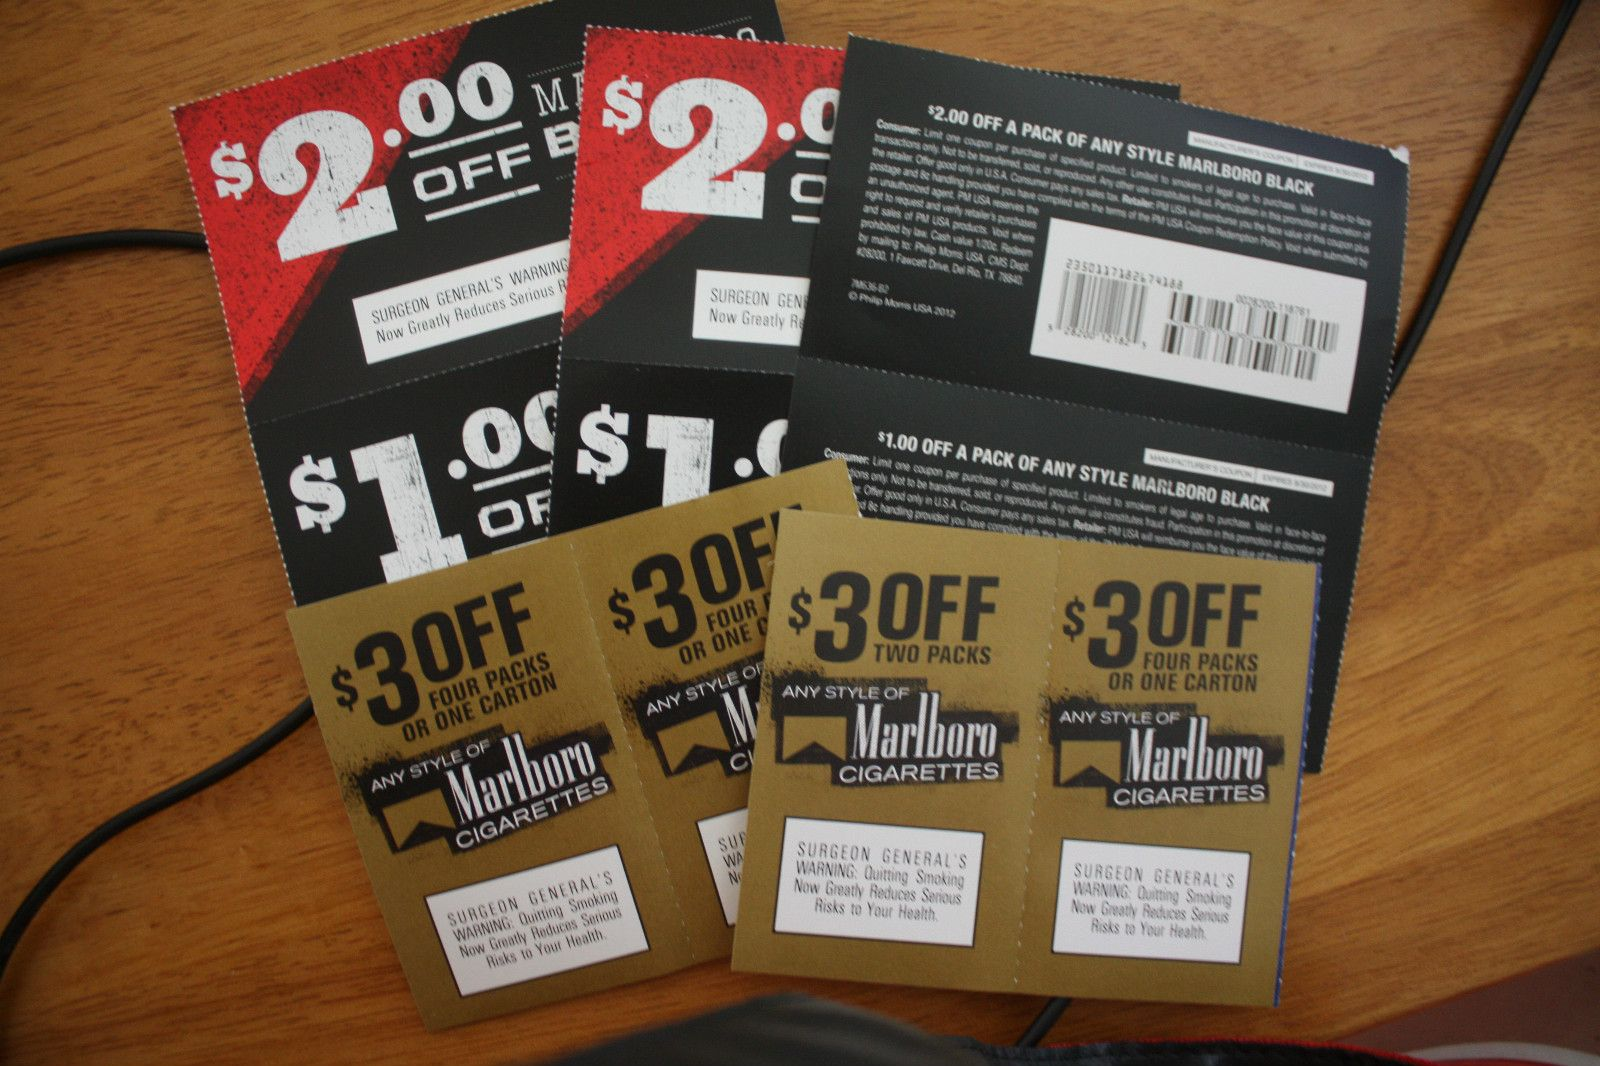 marlboro+coupon.JPG (1600×1066) Cigarette coupons